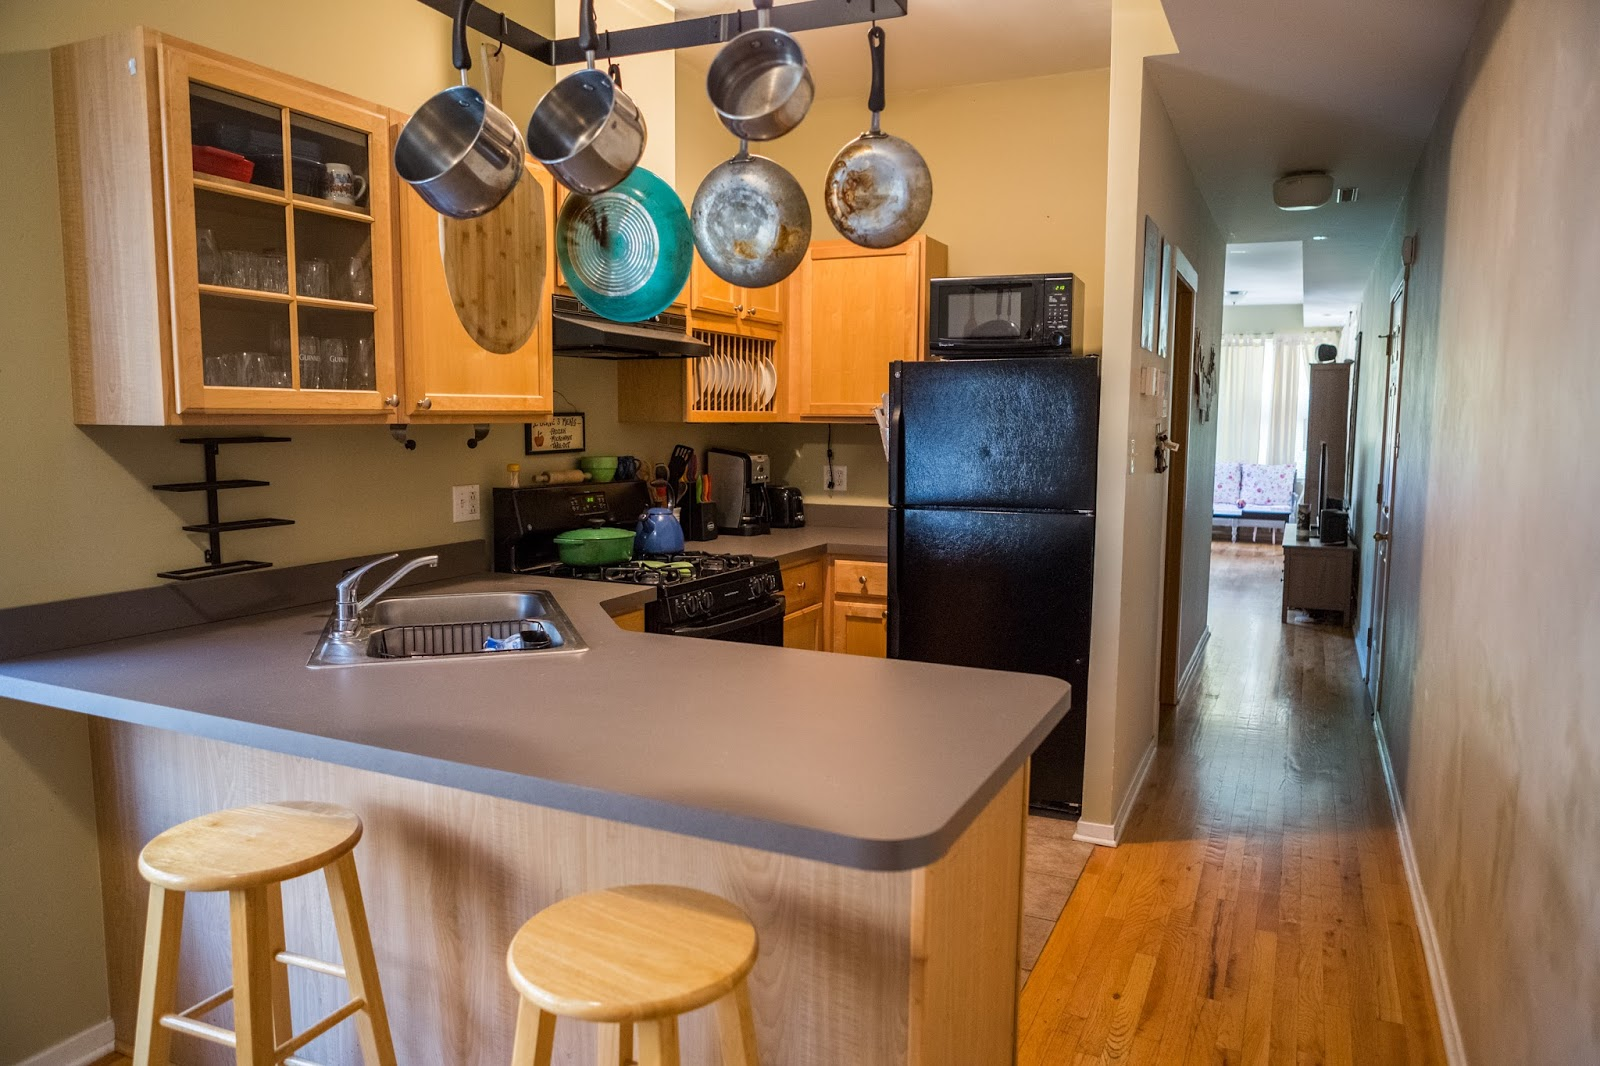 The Chicago Real Estate Local: New for Sale! Ravenswood Gardens ...